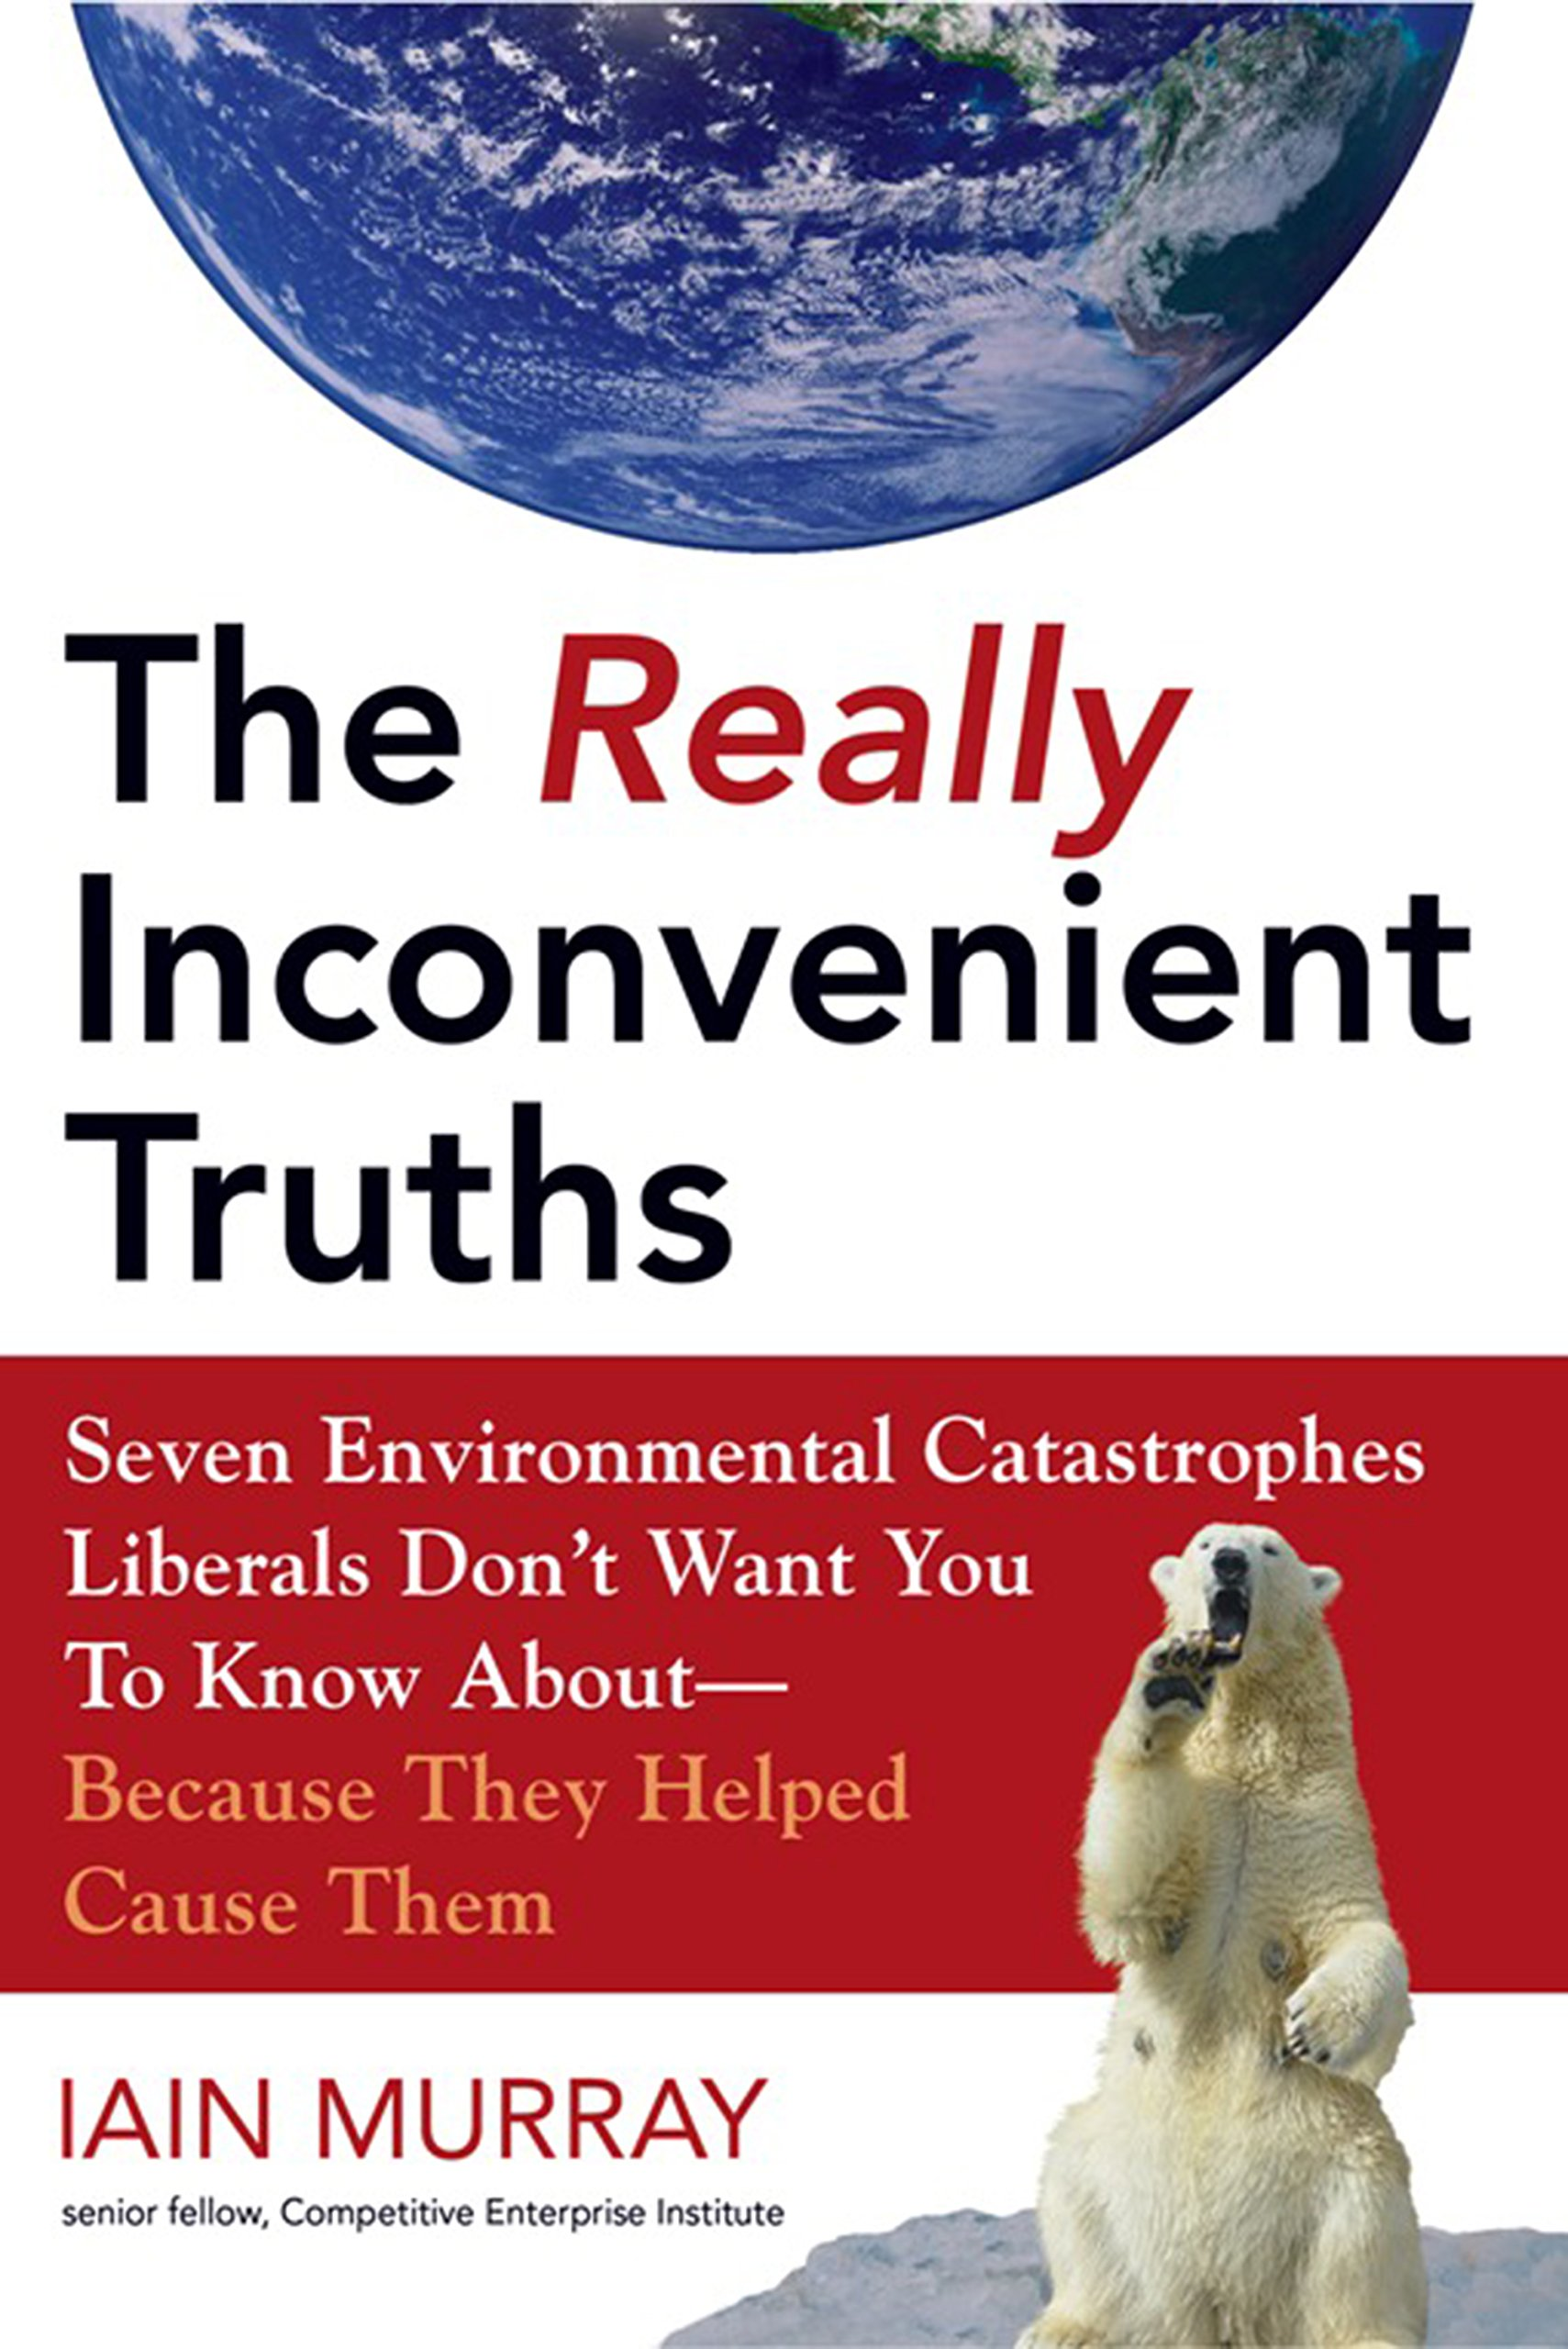 the really inconvenient truths seven environmental catastrophes the really inconvenient truths seven environmental catastrophes liberals don t want you to know about because they helped cause them iain murray